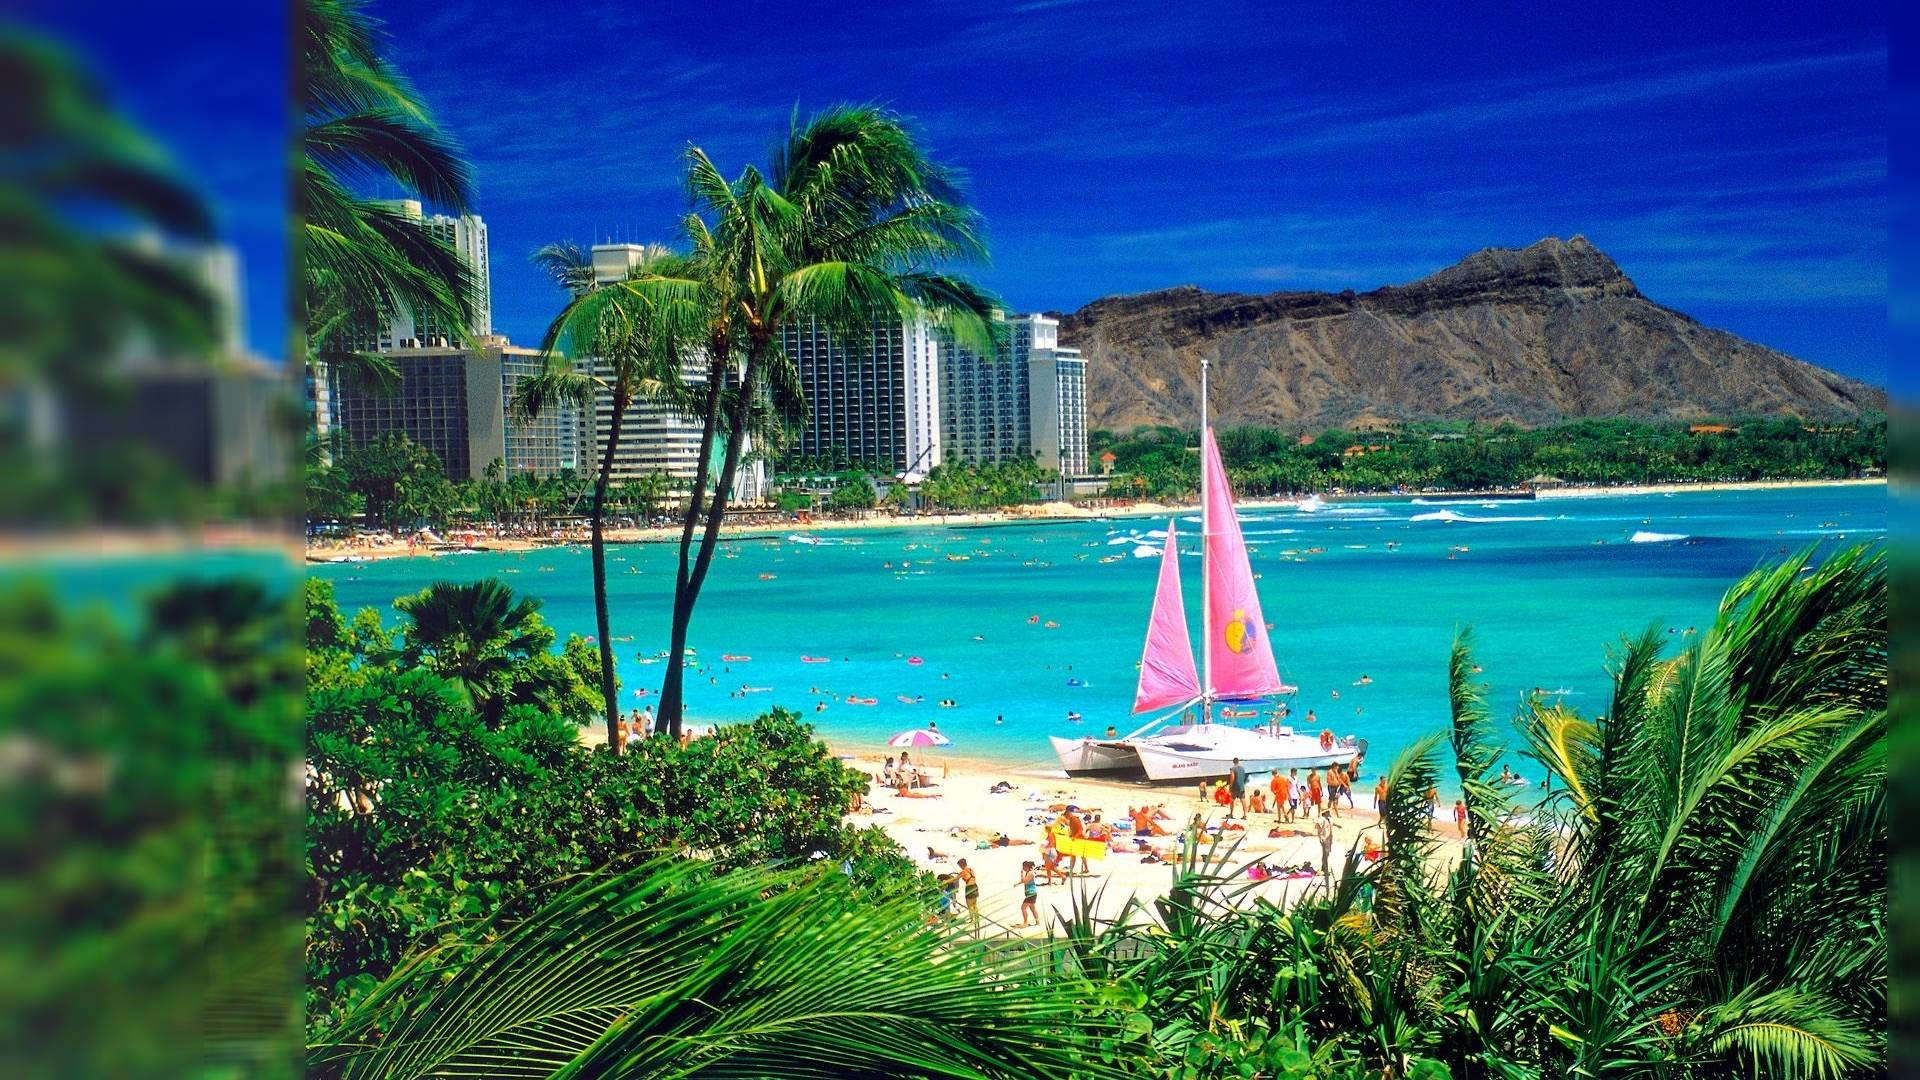 Hawaii Wallpapers Hd: Hawaii Desktop Wallpaper ·① WallpaperTag